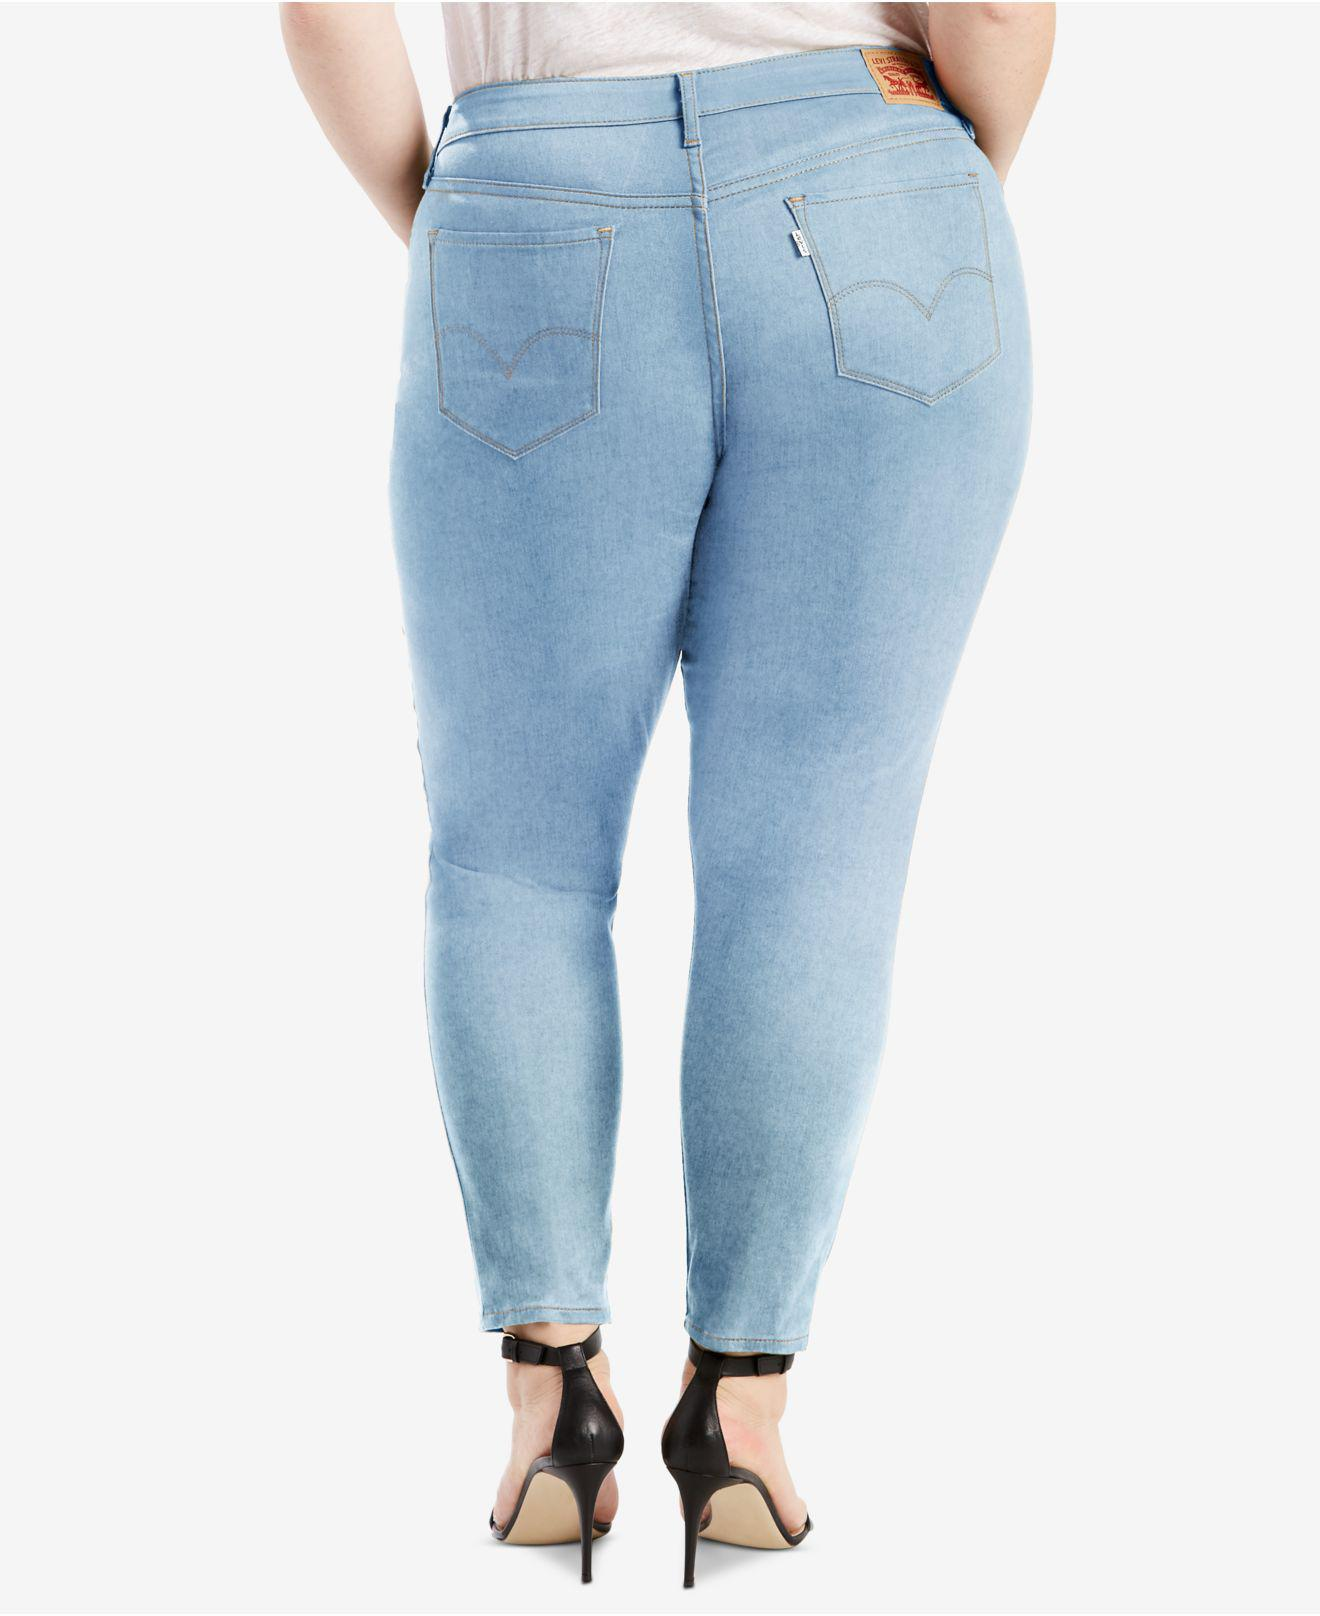 5e05745777c Lyst - Levi S ® Plus Size 711 Cotton Skinny Ankle Jeans in Blue